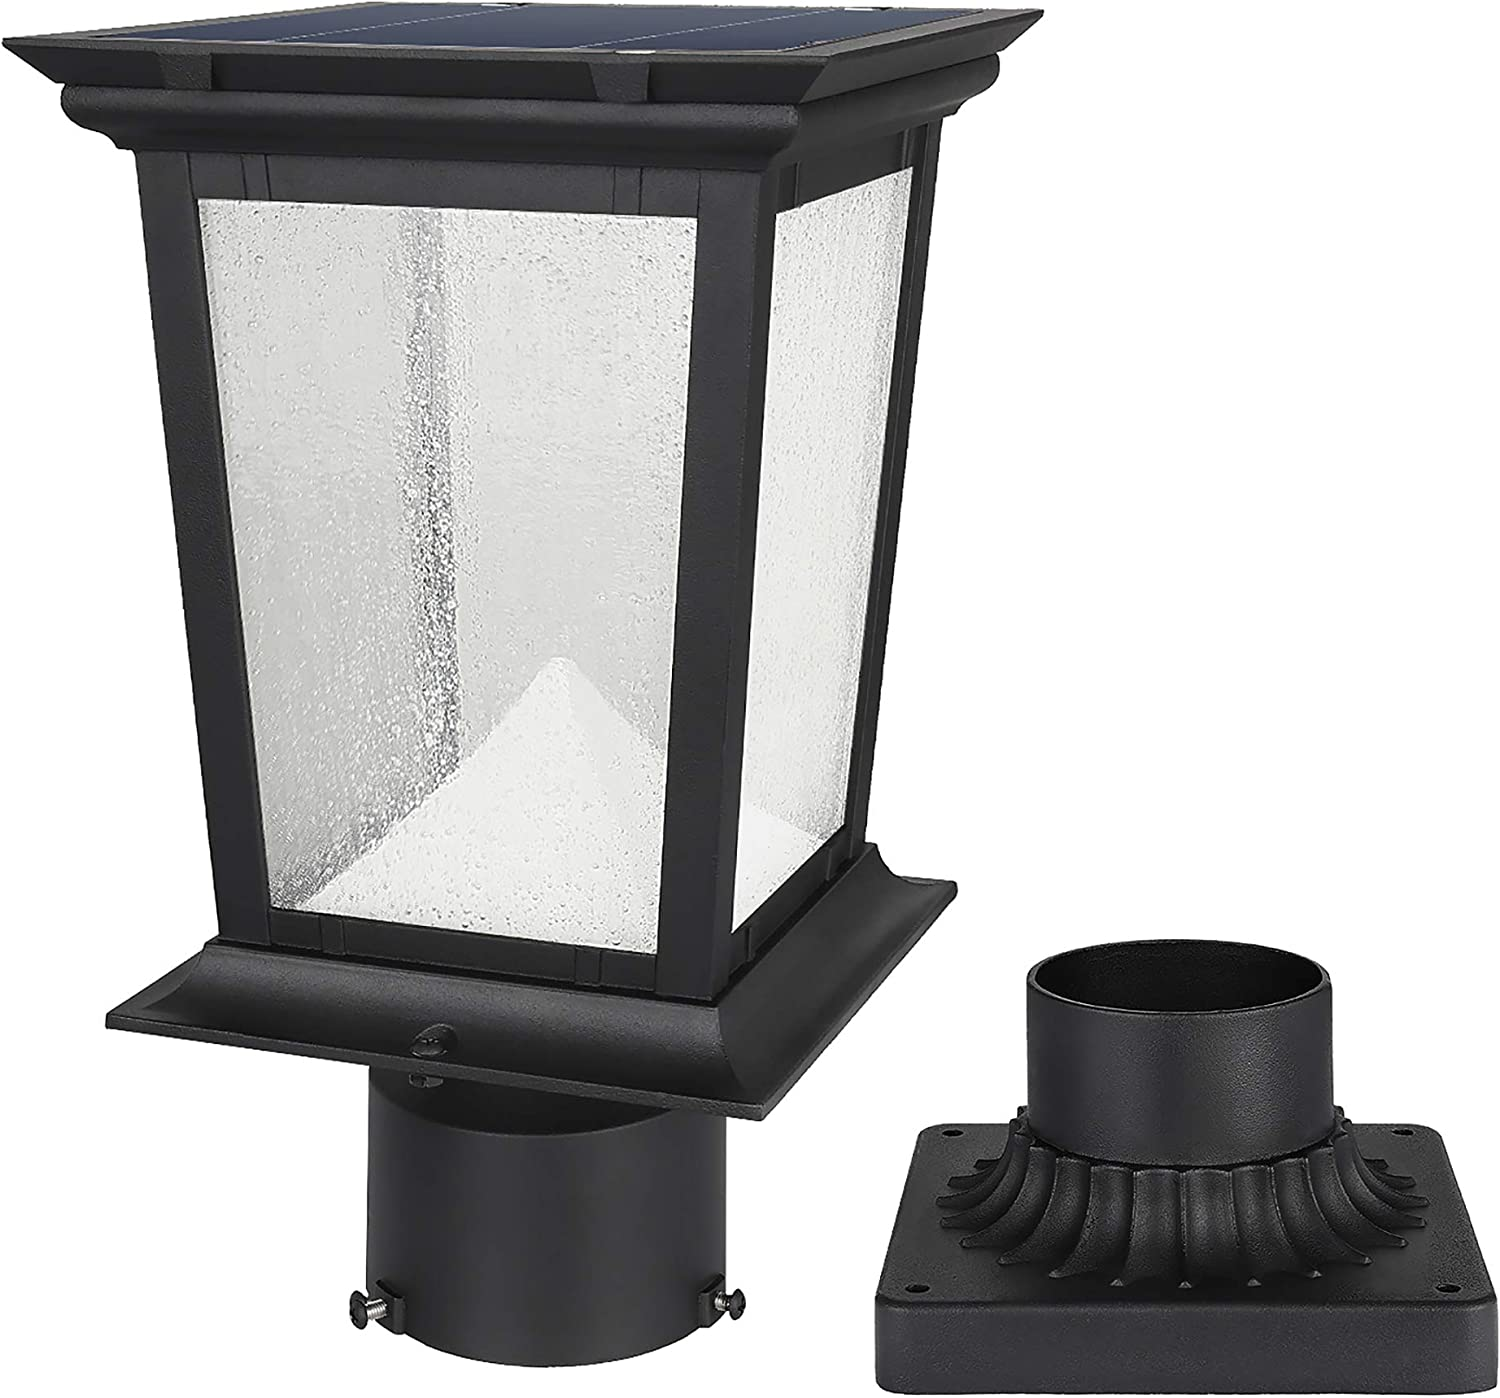 Solar Post Light Outdoor, Aluminum Exterior Motion Sensor Post Pole Lantern with 3 Inch Pier Mount Base, Daylight White 6500K Glass Post Cap Lights Fixture for Garden Yard Fence Porch, Black Finish